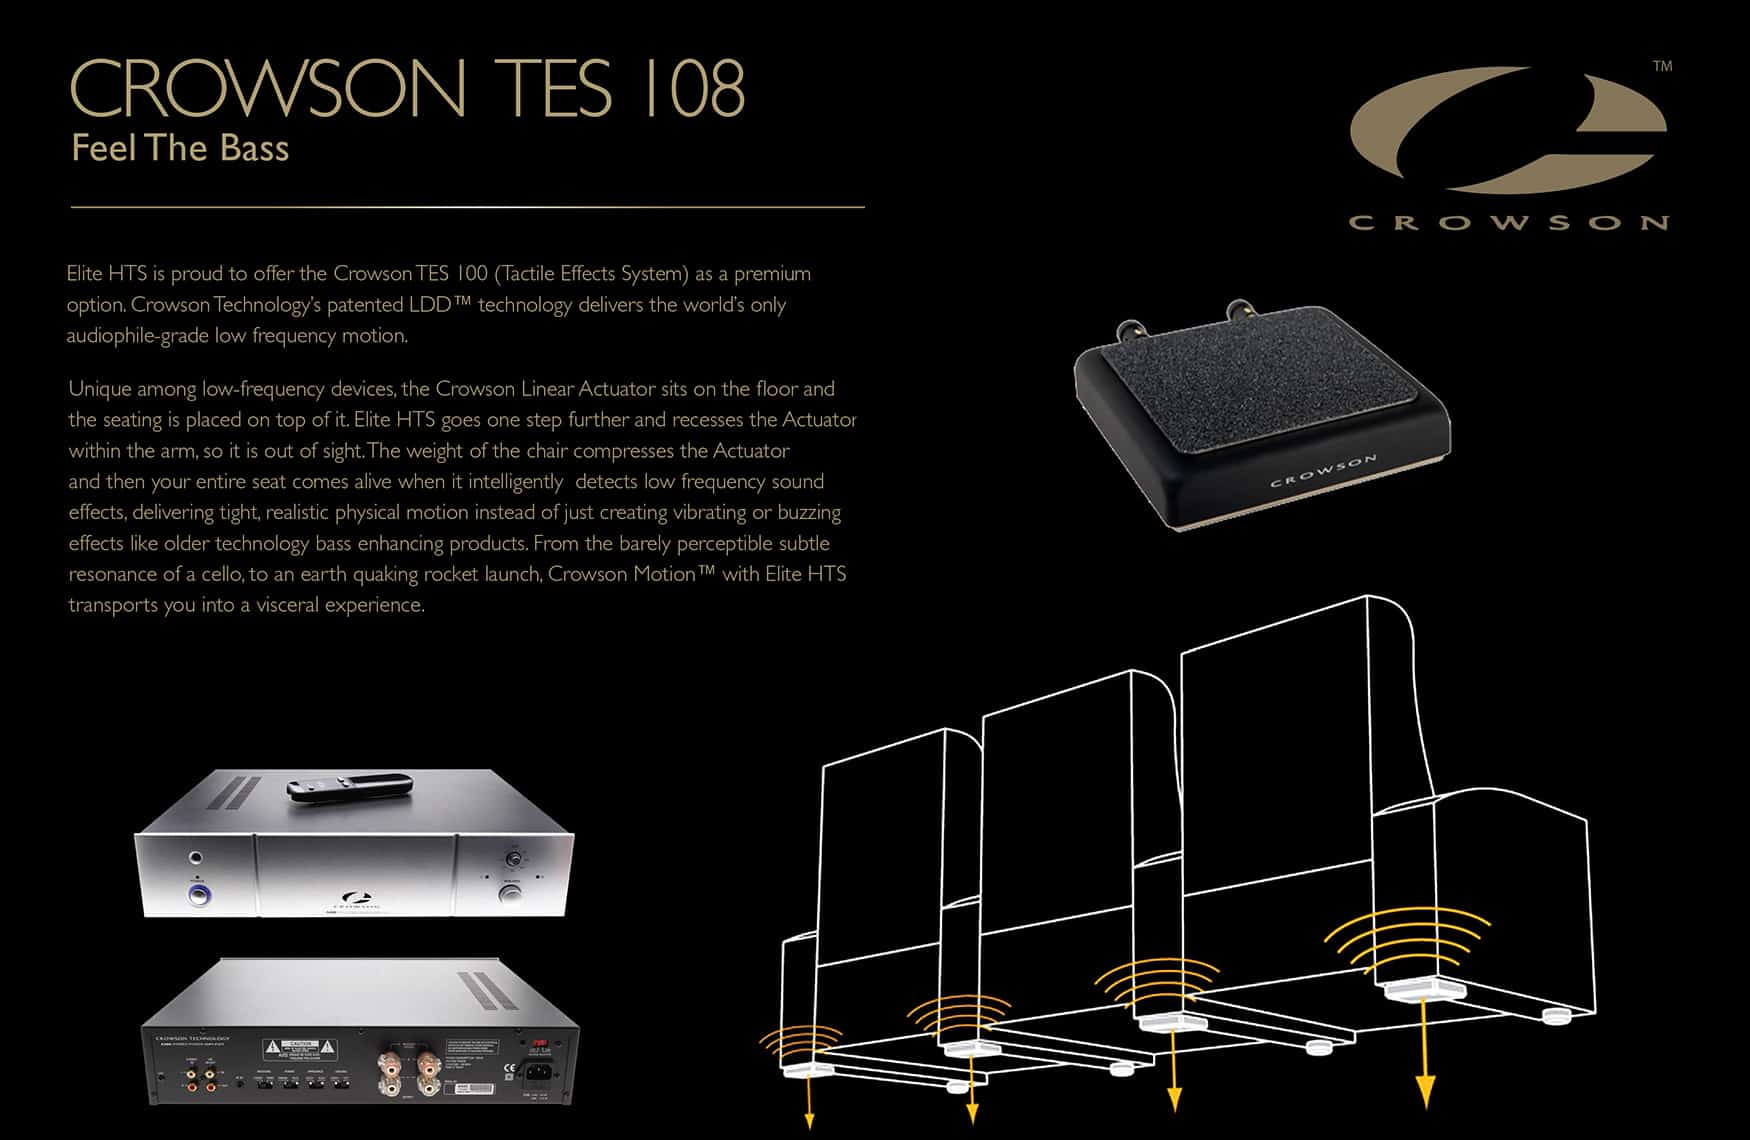 home theatre effects system Crowson tes 108 image